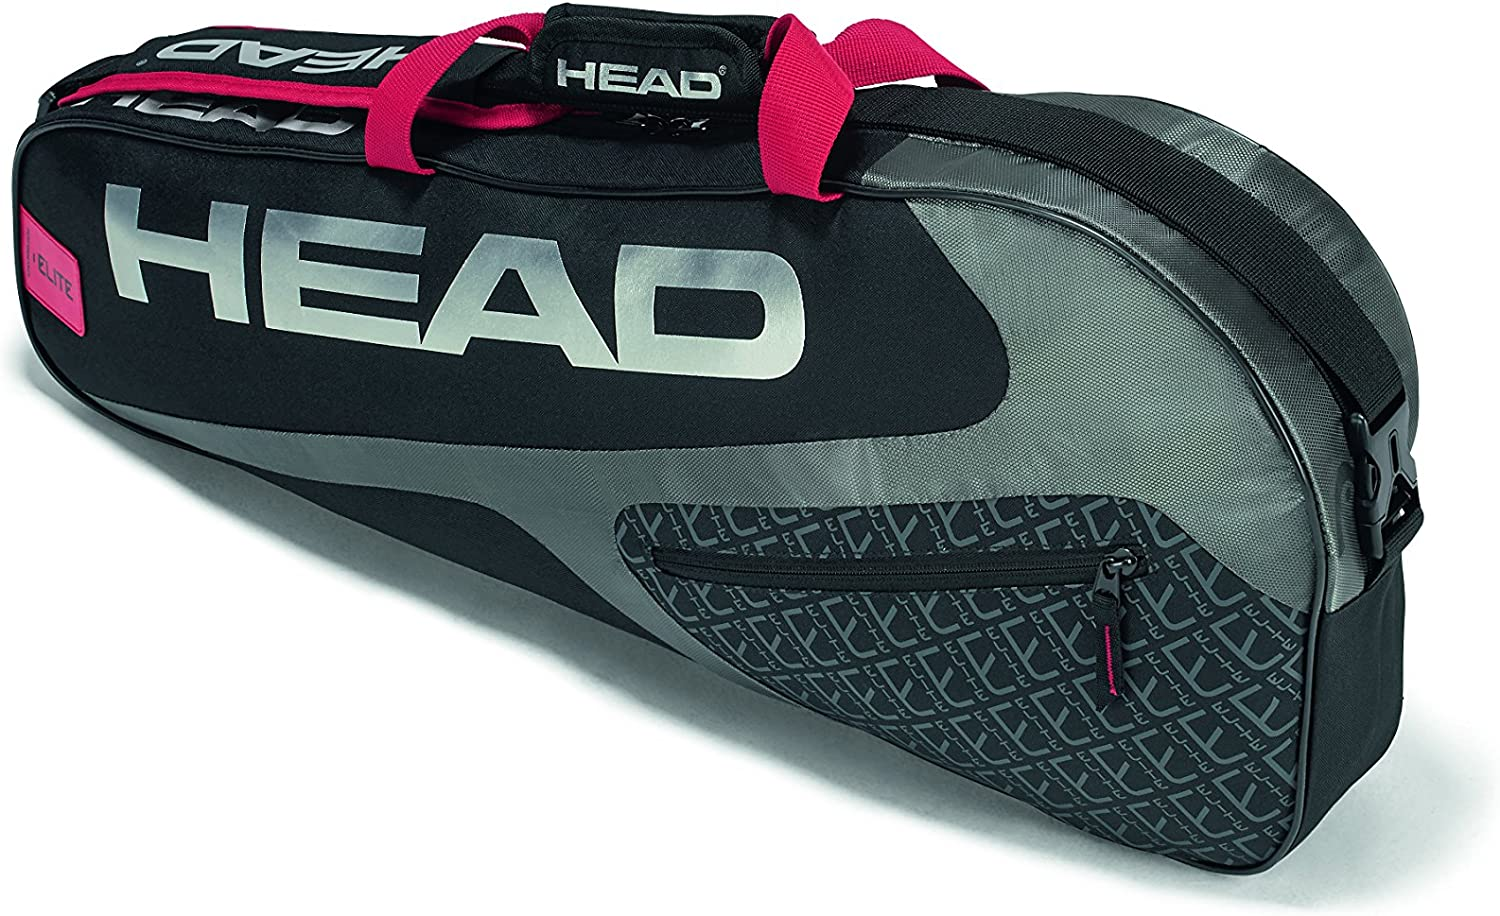 HEAD Elite 3R Pro Tennis Bag 283458BKRD, Black Red